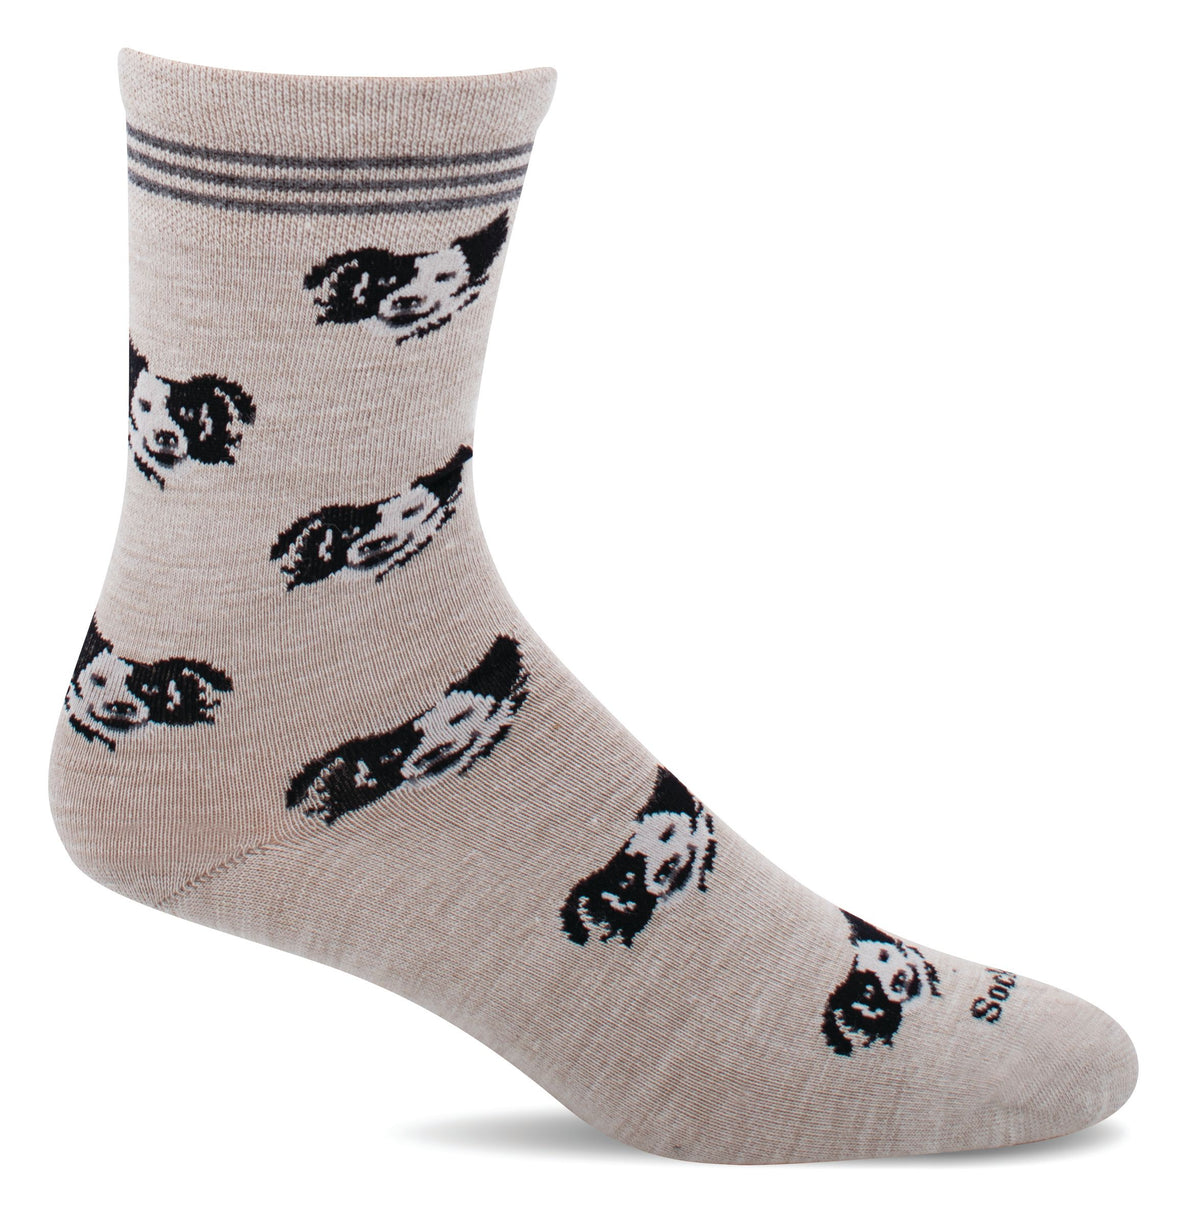 Sockwell - Women's Essential Comfort - Cuddle Buddy LD179W